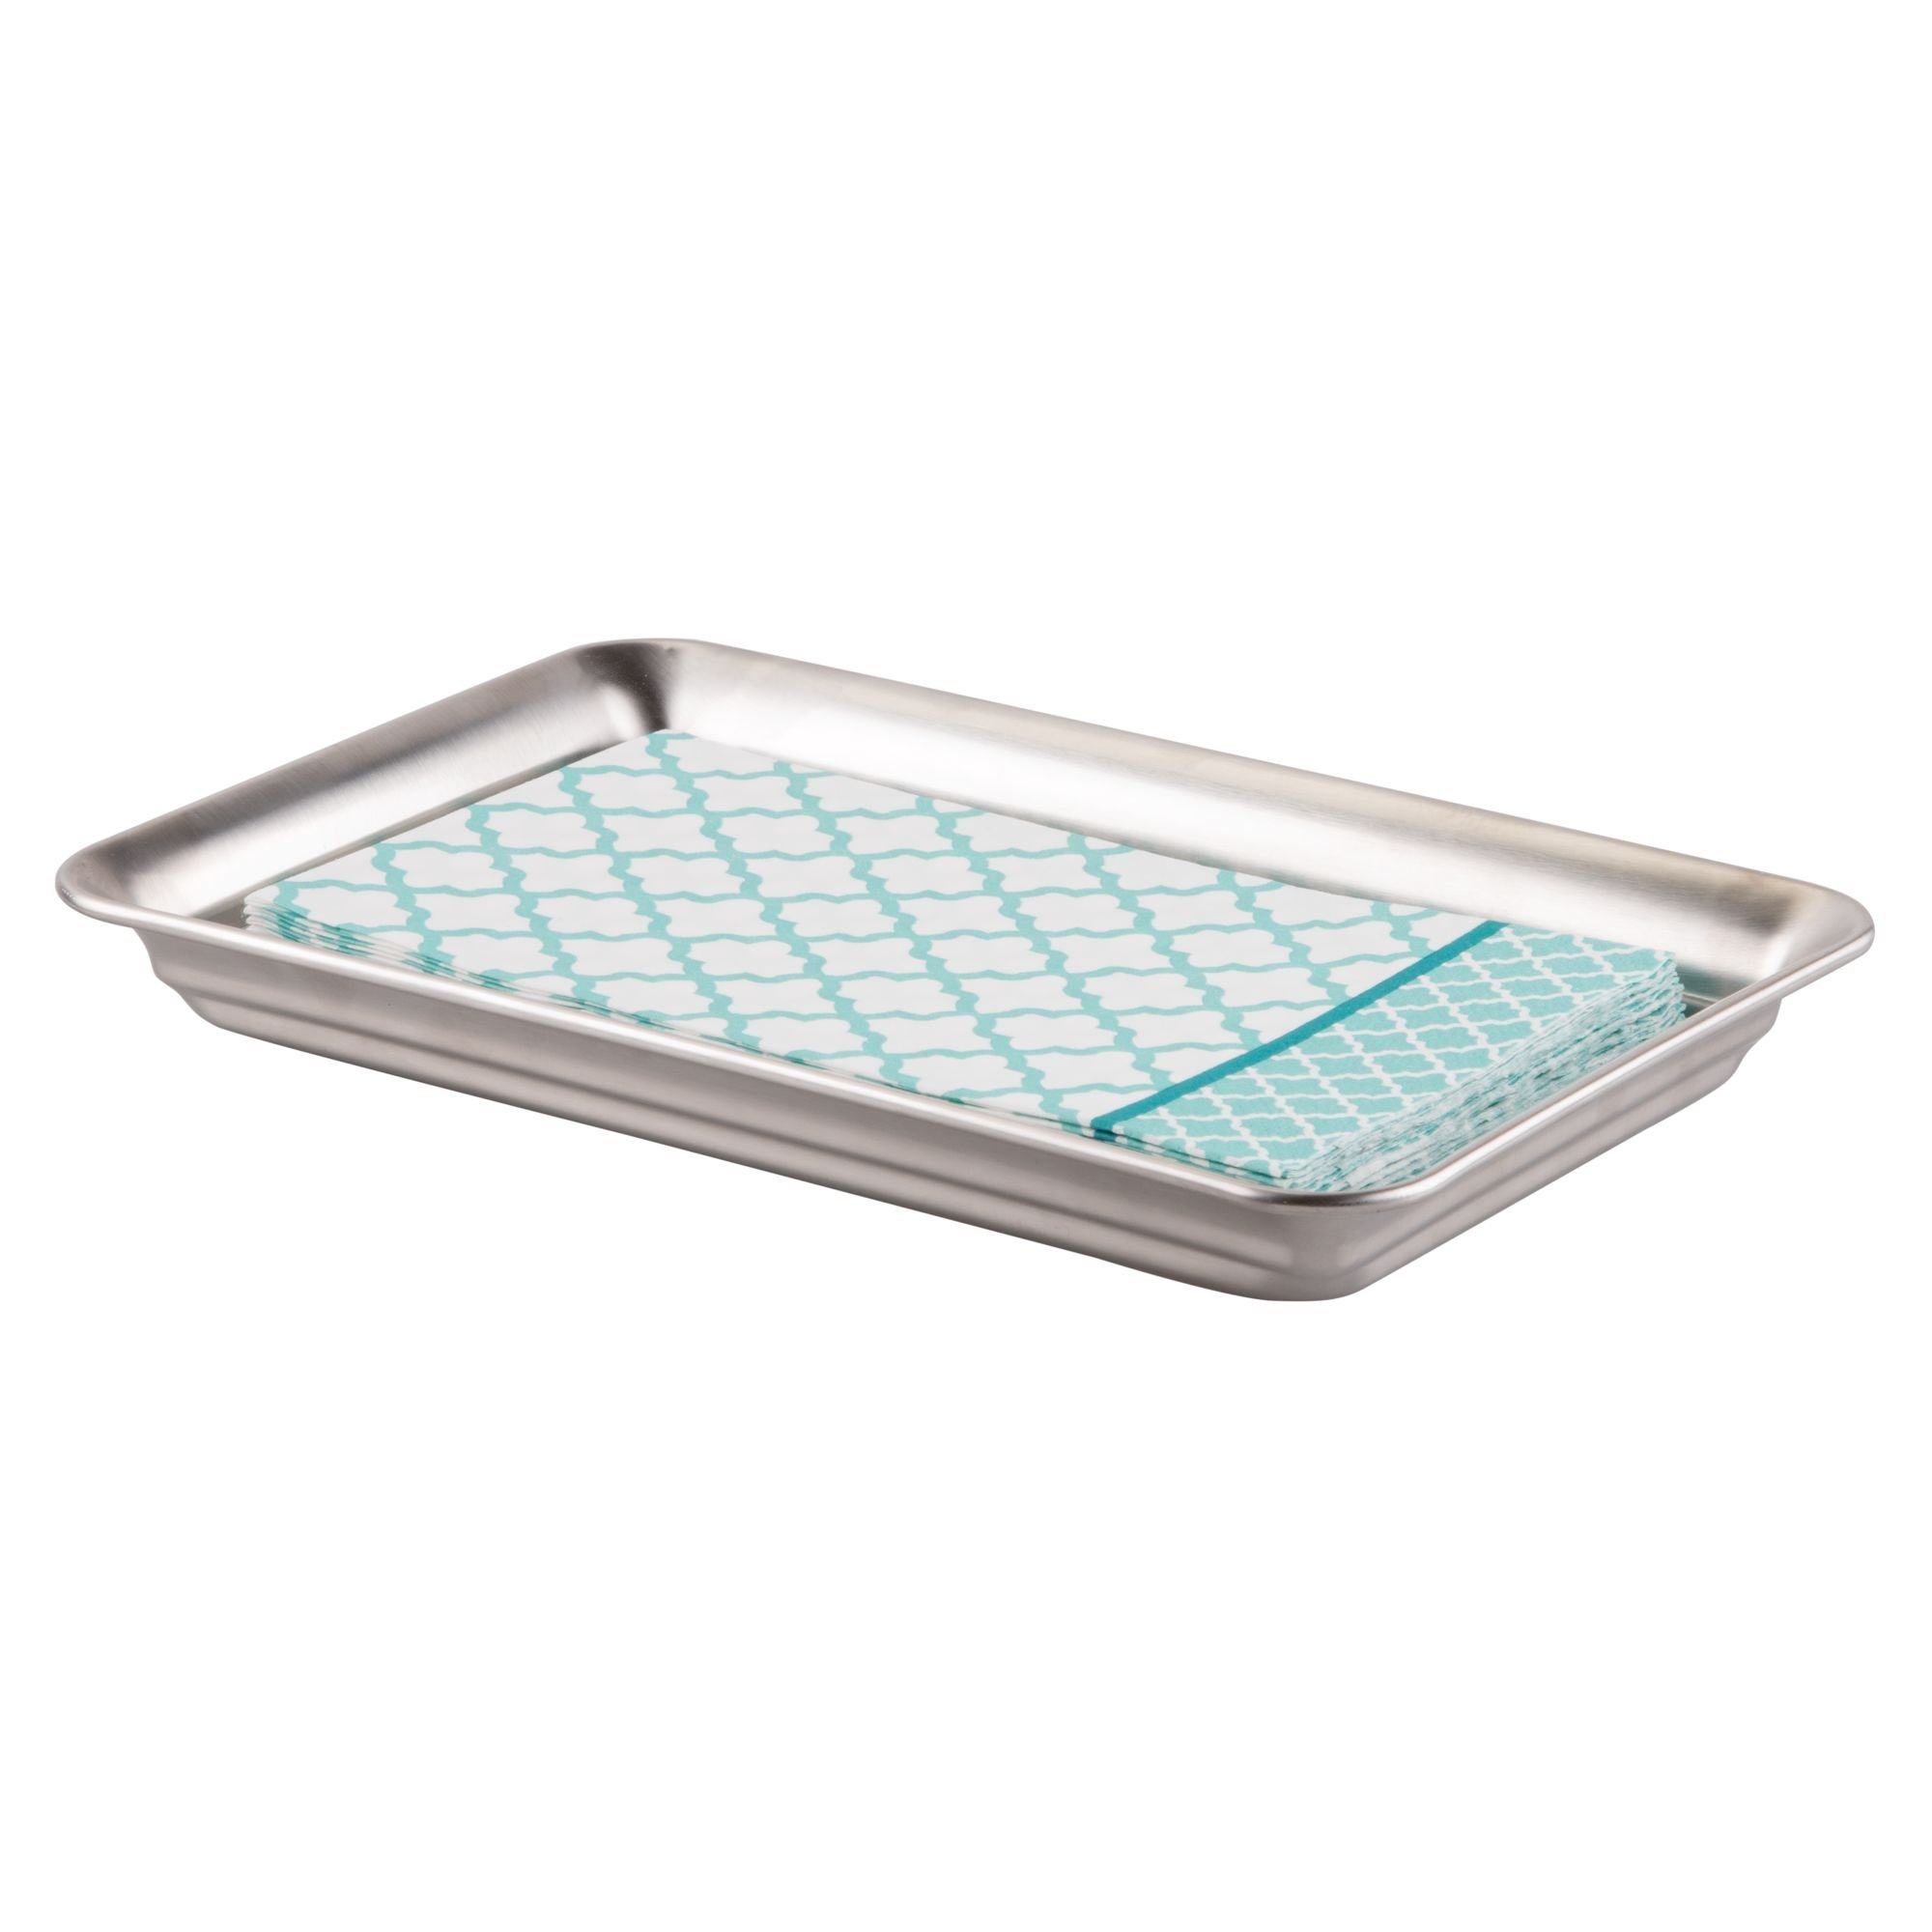 InterDesign Countertop Guest Towel Tray - Bathroom Vanity Organizer, Brushed